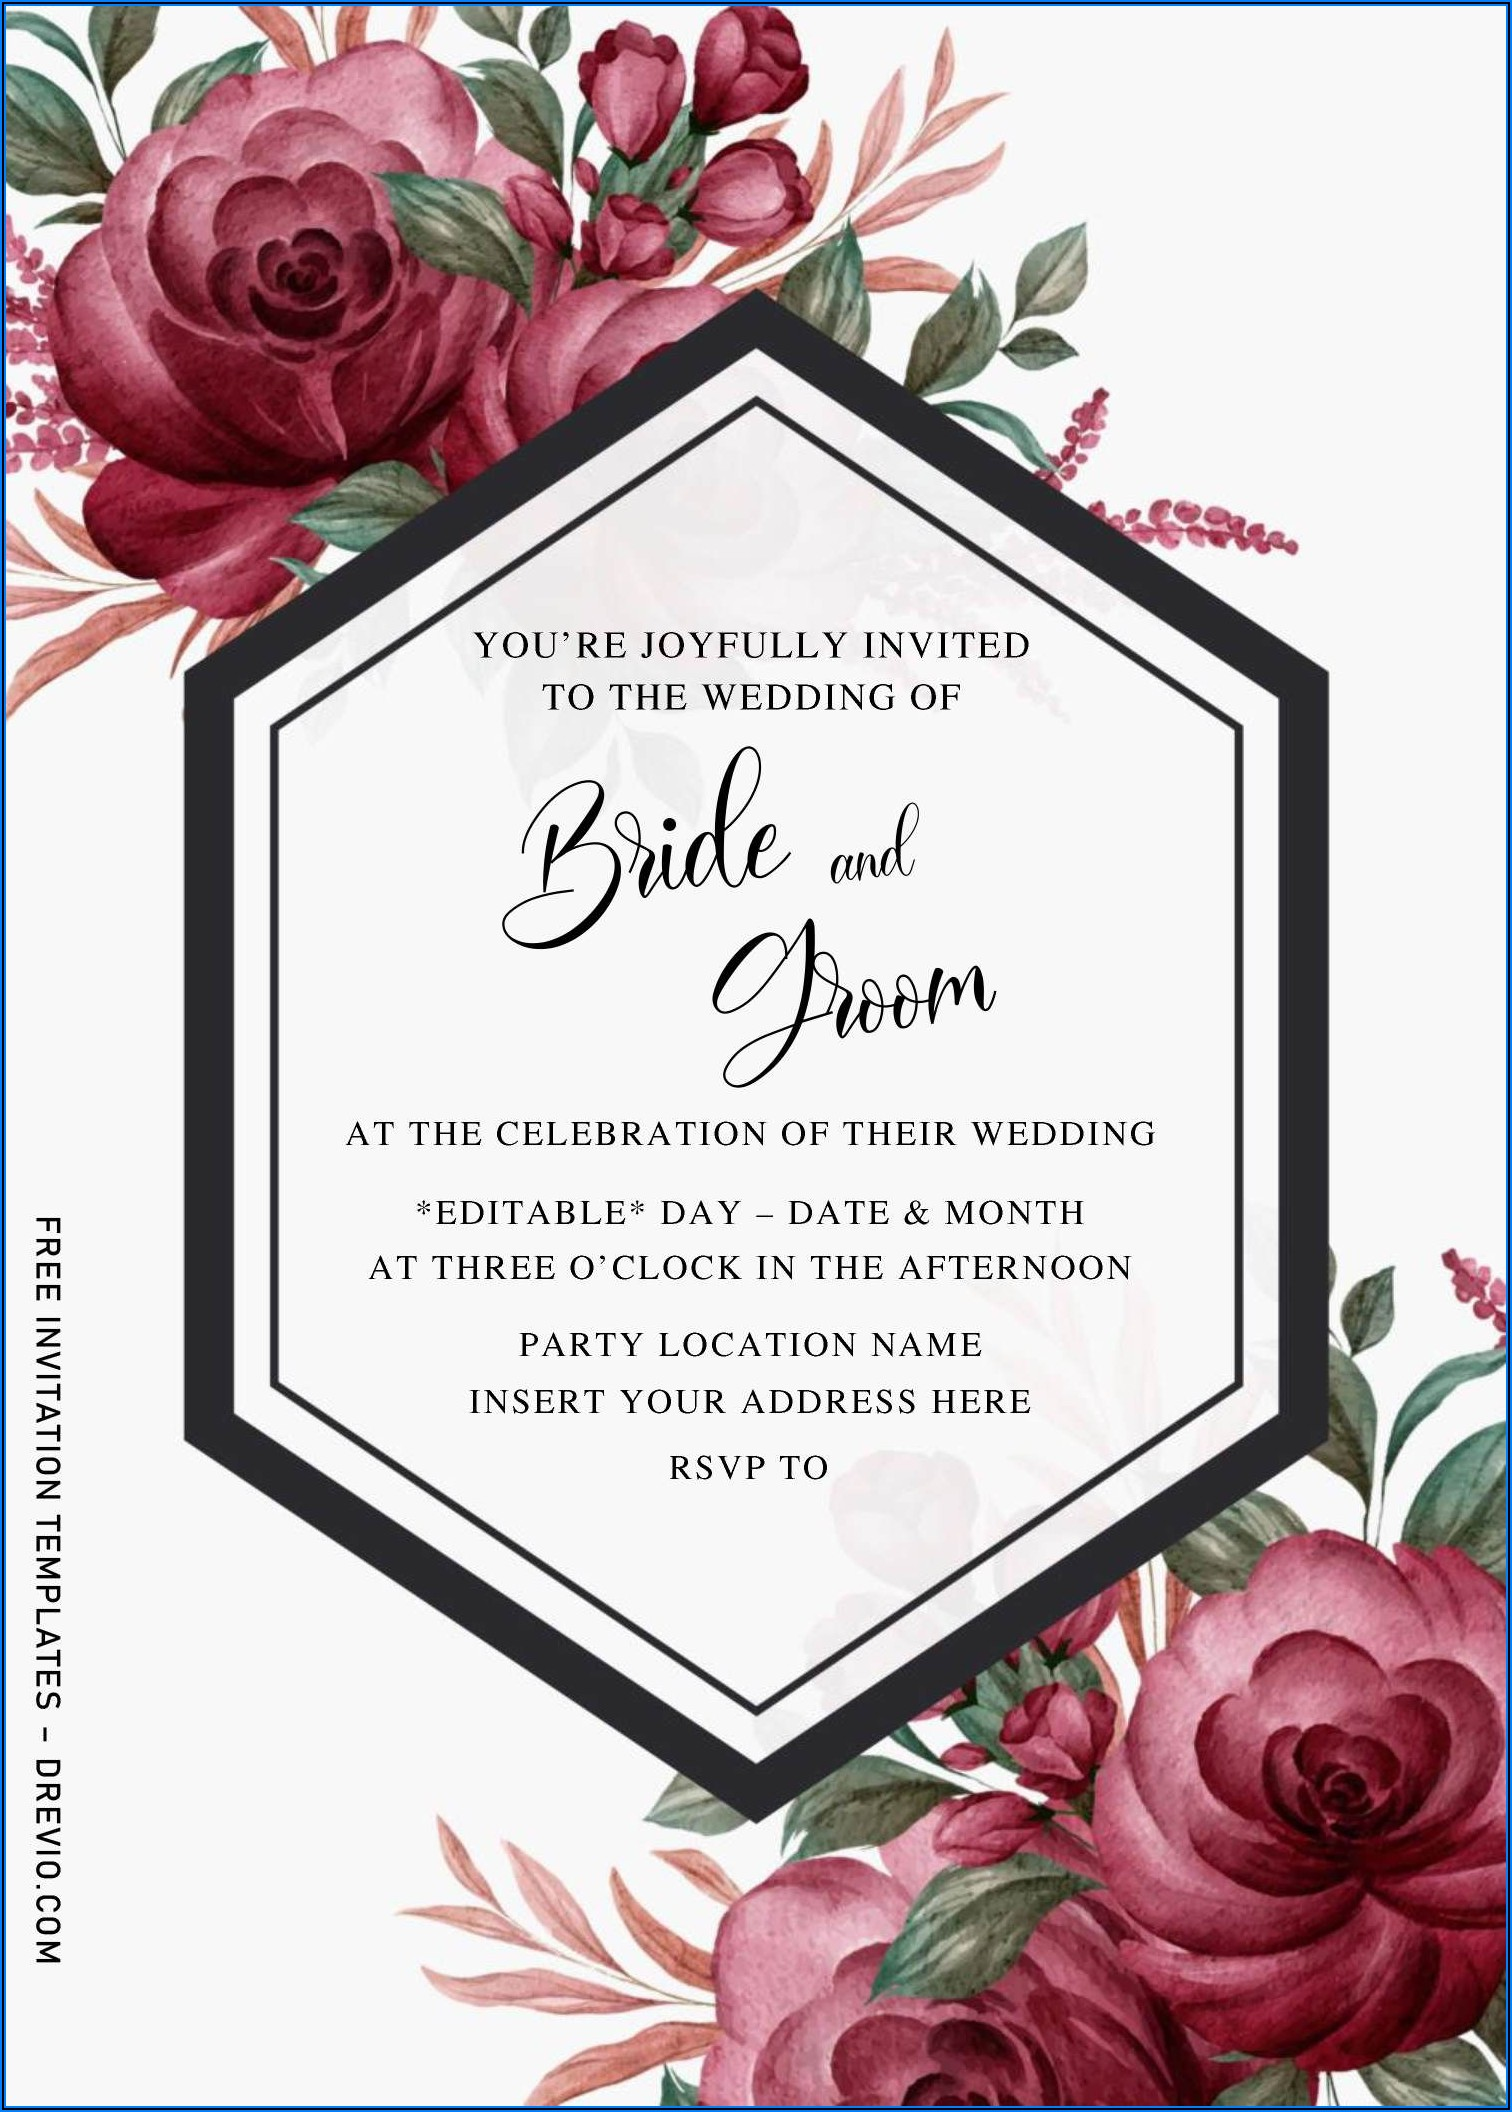 Burgundy Wedding Invitations Templates